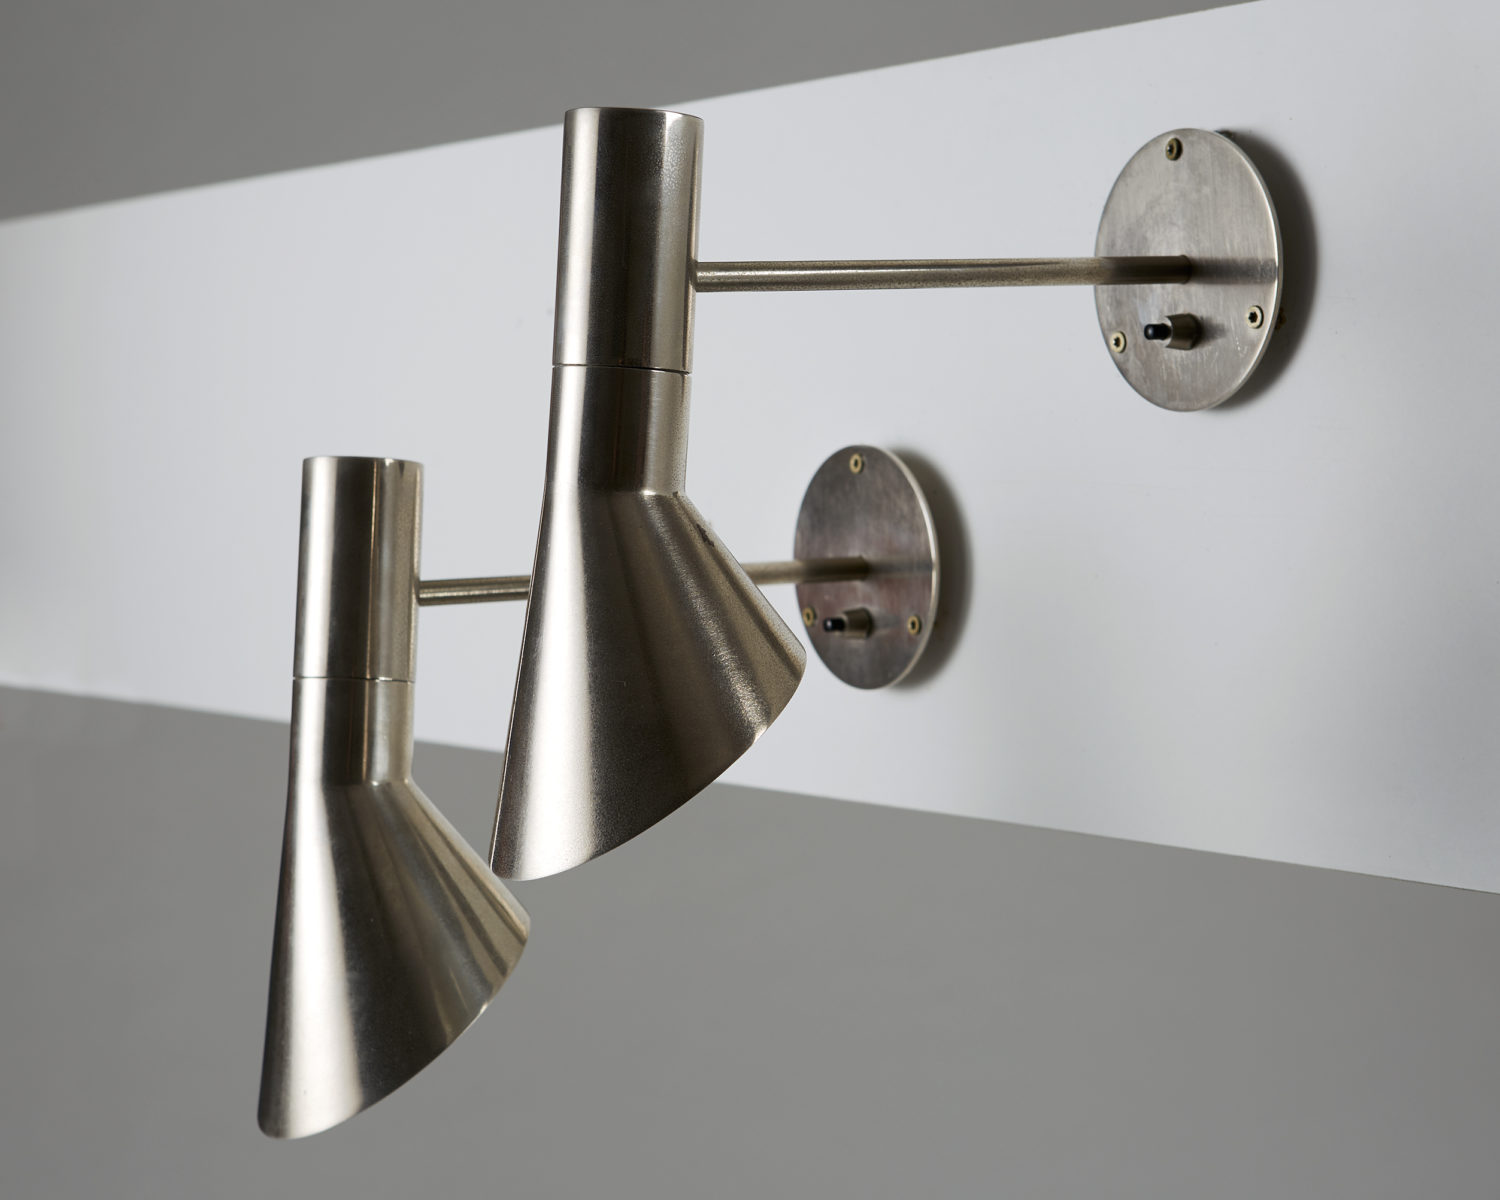 Arne Jacobsen Wall Sconce Pair Of Wall Lamps Designed By Arne Jacobsen For Louis Poulsen